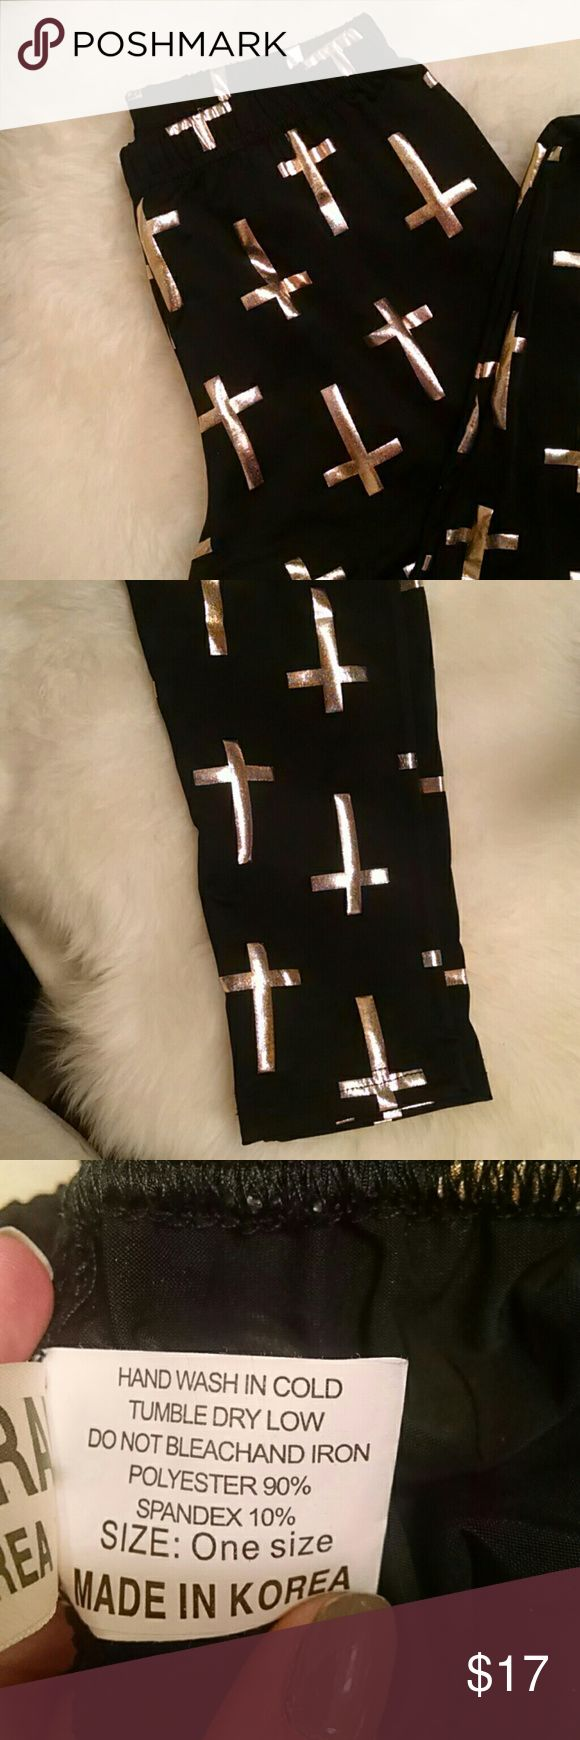 ✝Gold cross leggings✝ Black leggings with gold cross print. Worn once. Tag says one size but I would say they fit S/M.  90% polyester 10% spandex   No trades ✔ Make a FAIR offer Pants Leggings